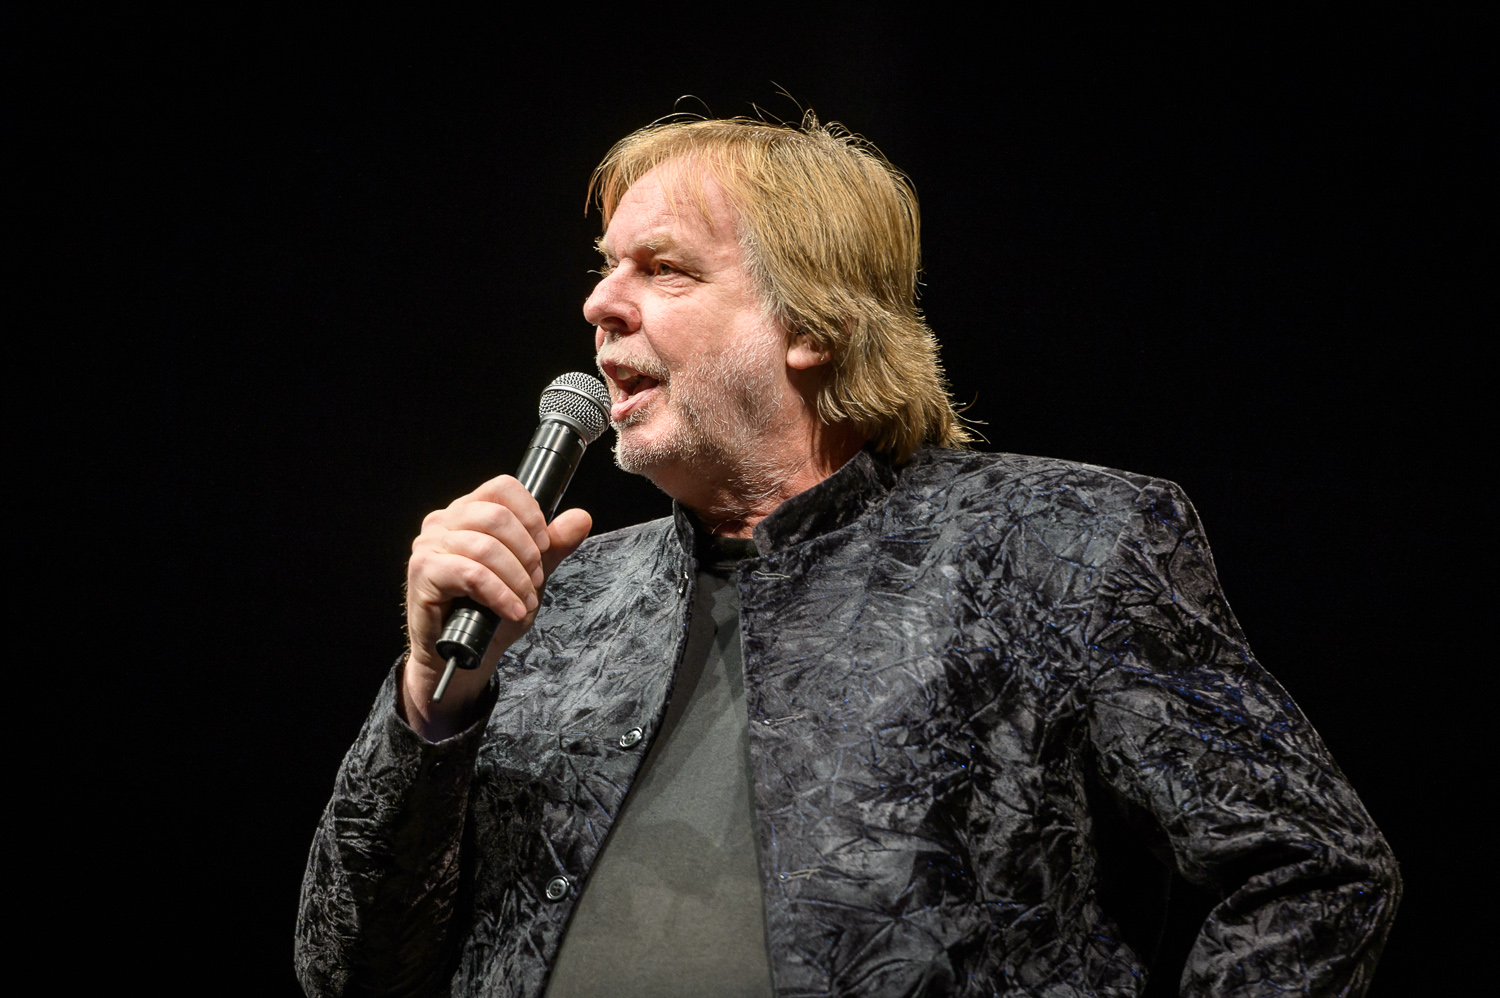 Rick Wakeman_October 07, 2012_069.jpg